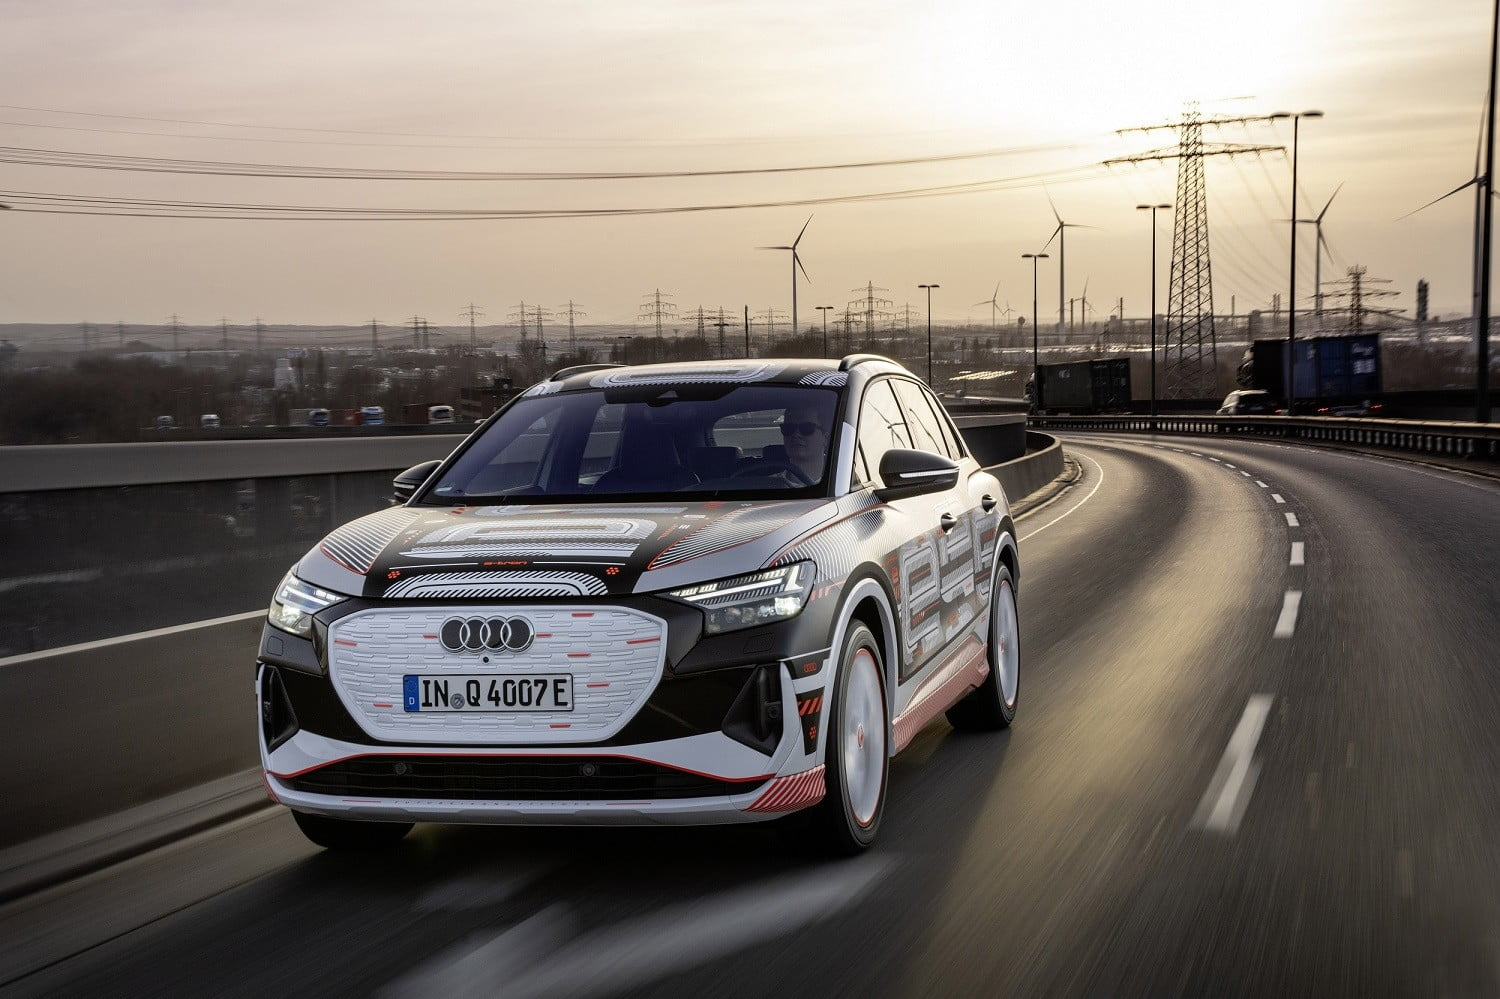 audi previews 2022 q4 e tron compact electric crossover